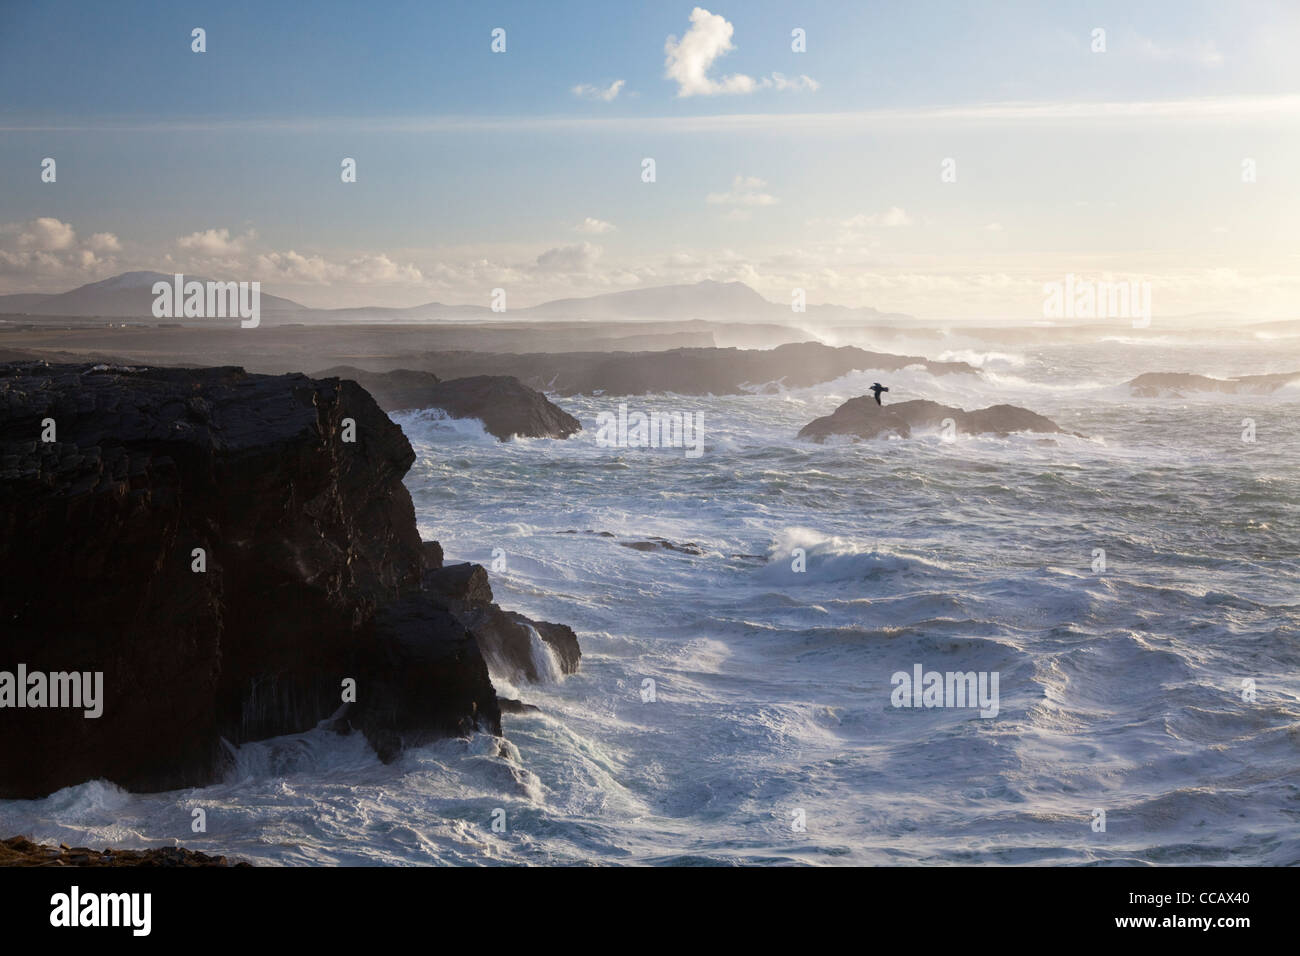 Stormy seas near the cliffs of Belmullet, County Mayo, Ireland. - Stock Image